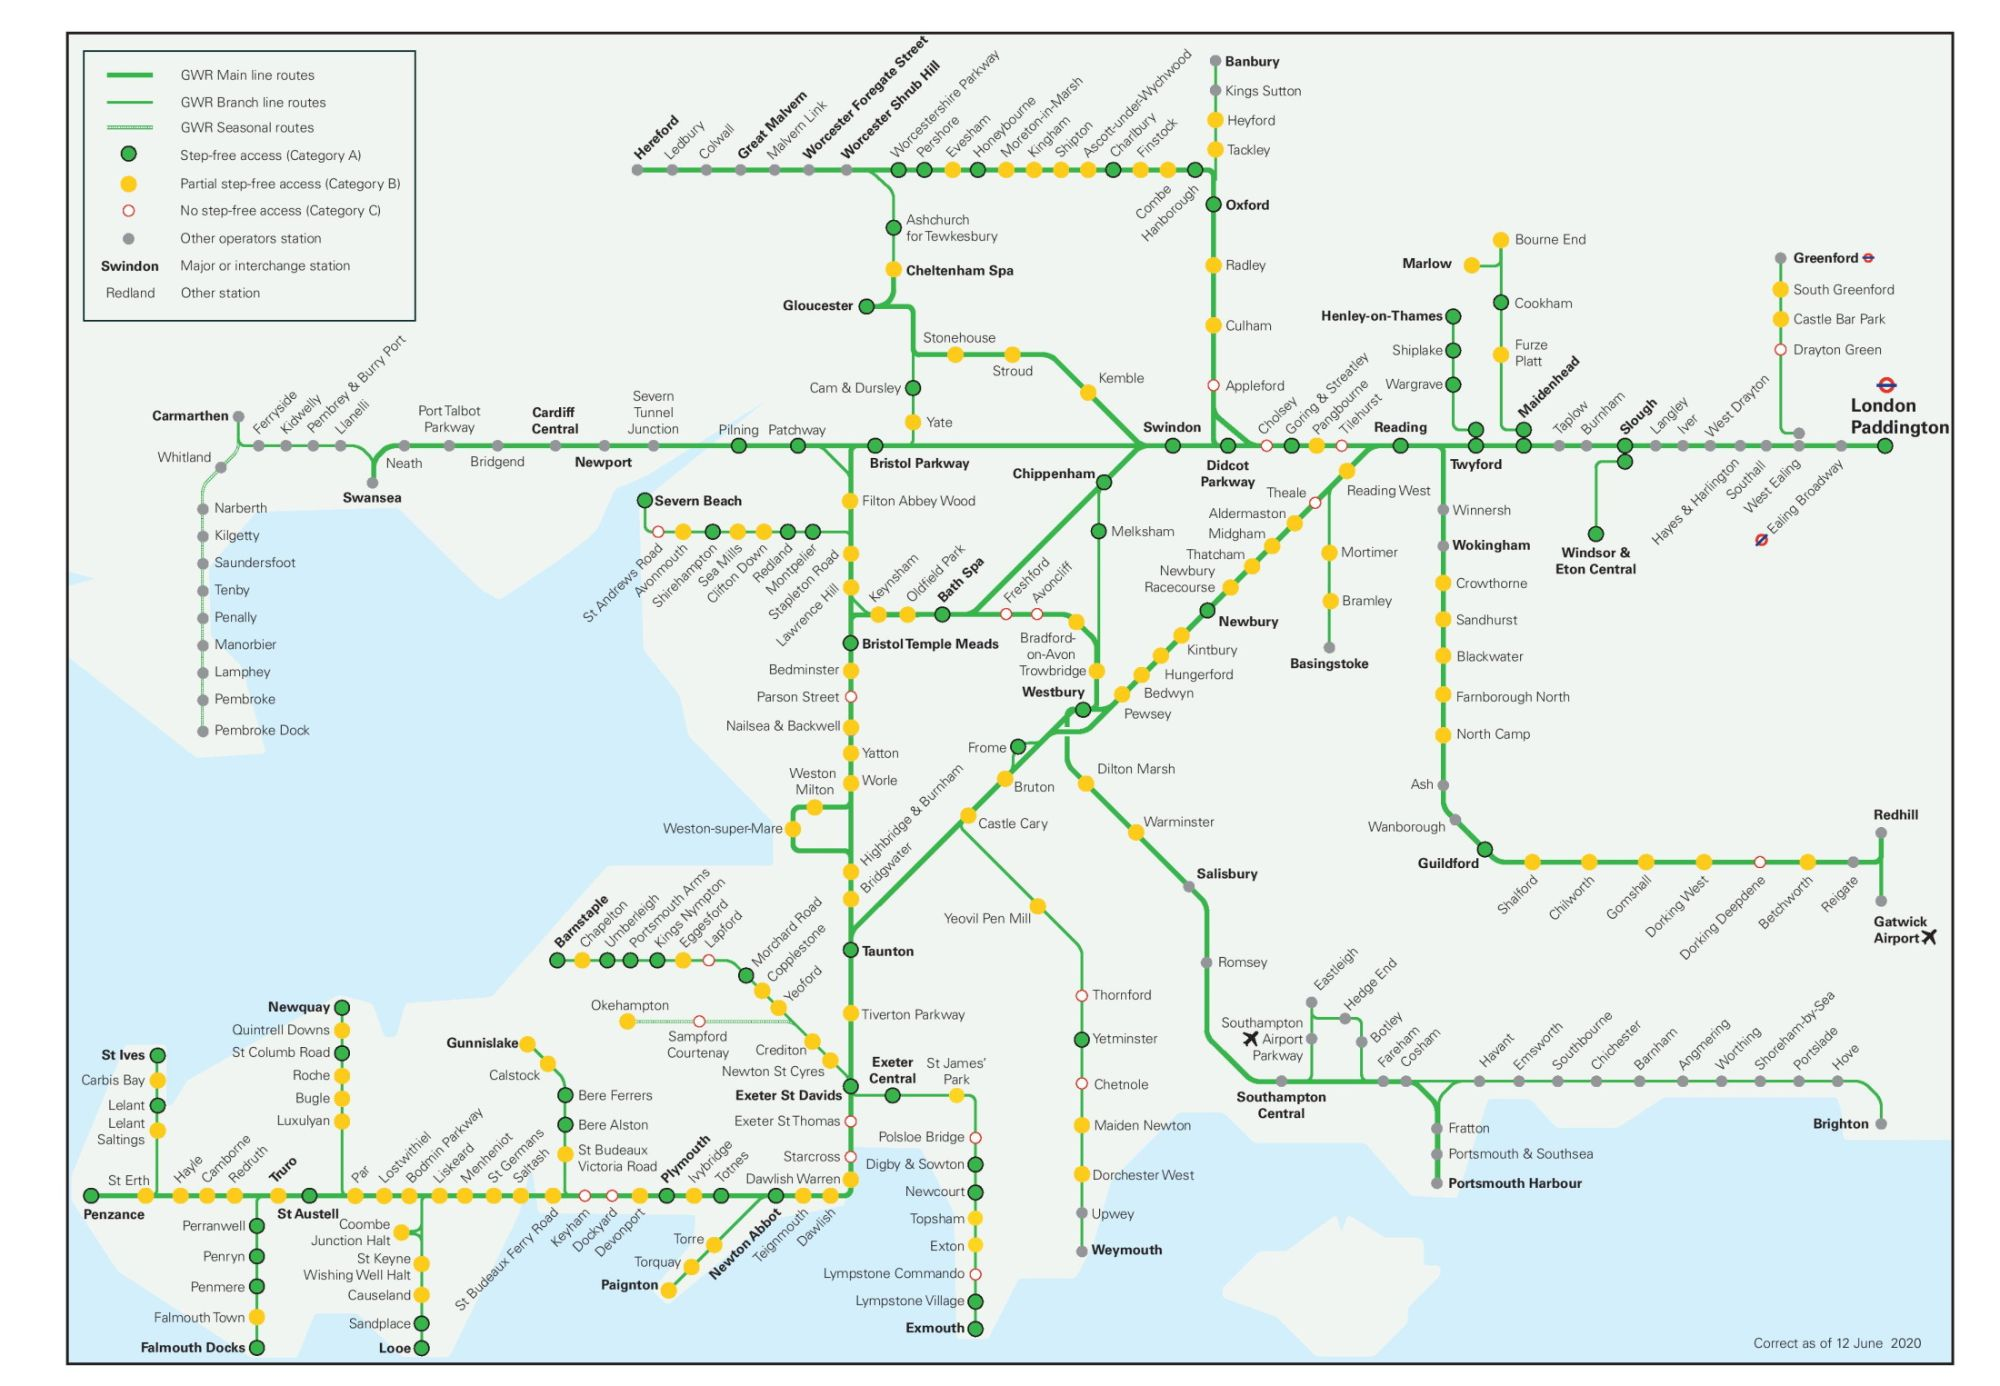 Image showing the Great Western Railway route map circa 2021.